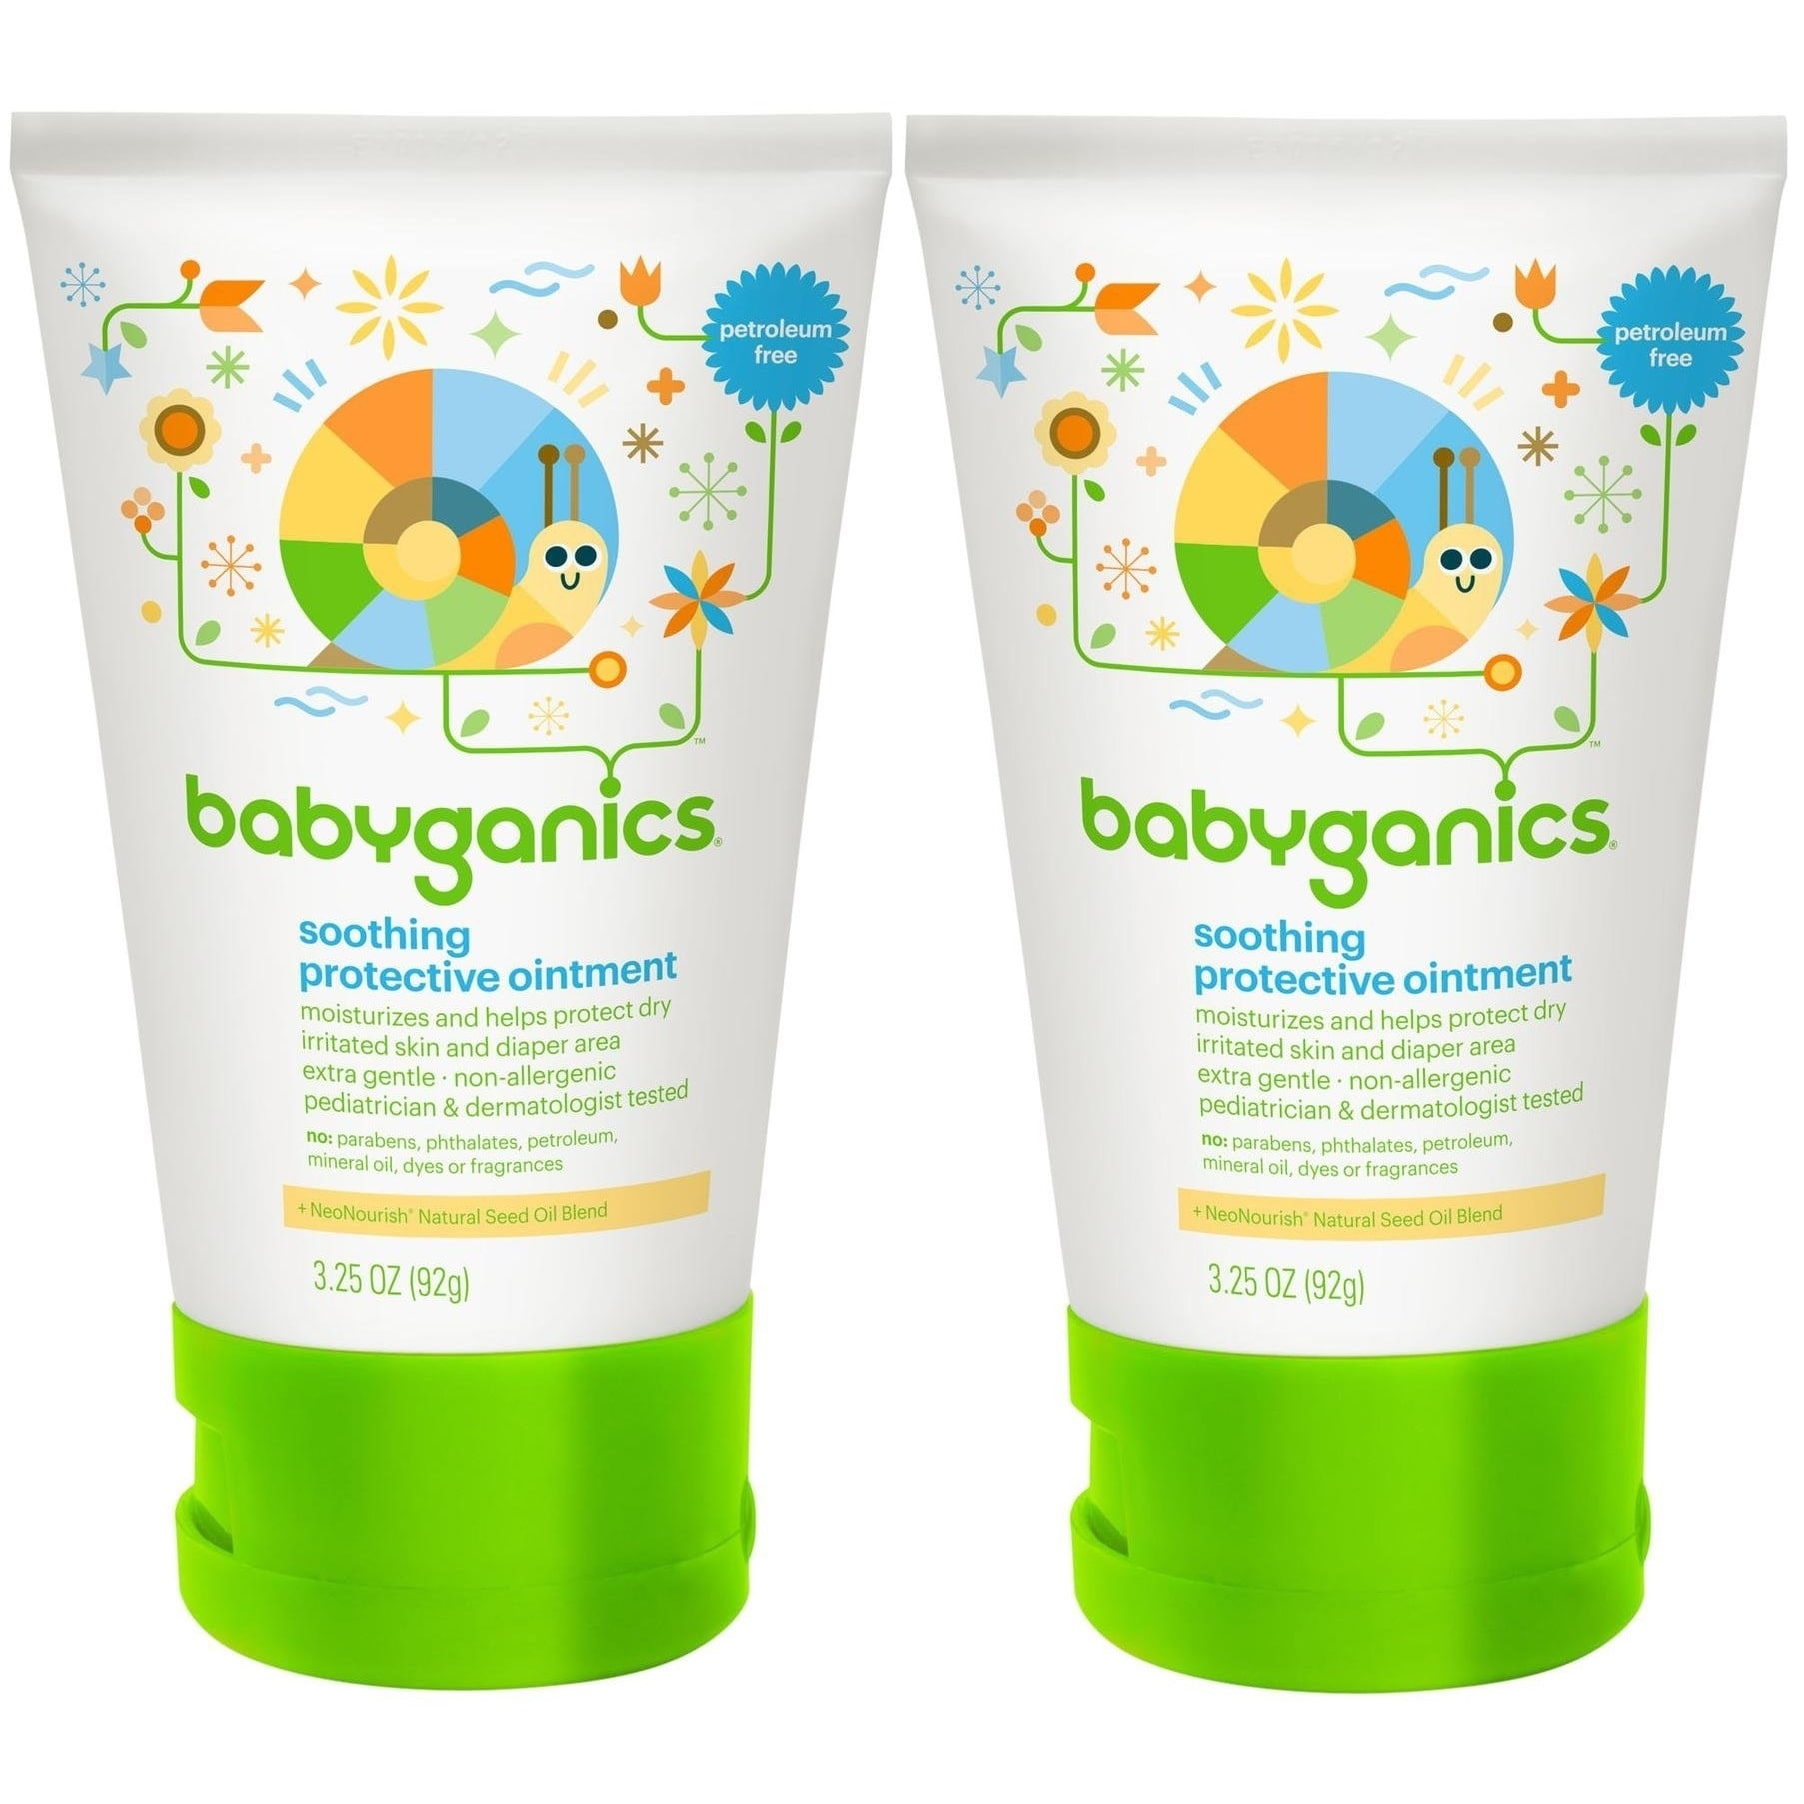 Babyganics Soothing Protective Ointment - 3.25 Ounce - 2 Pack